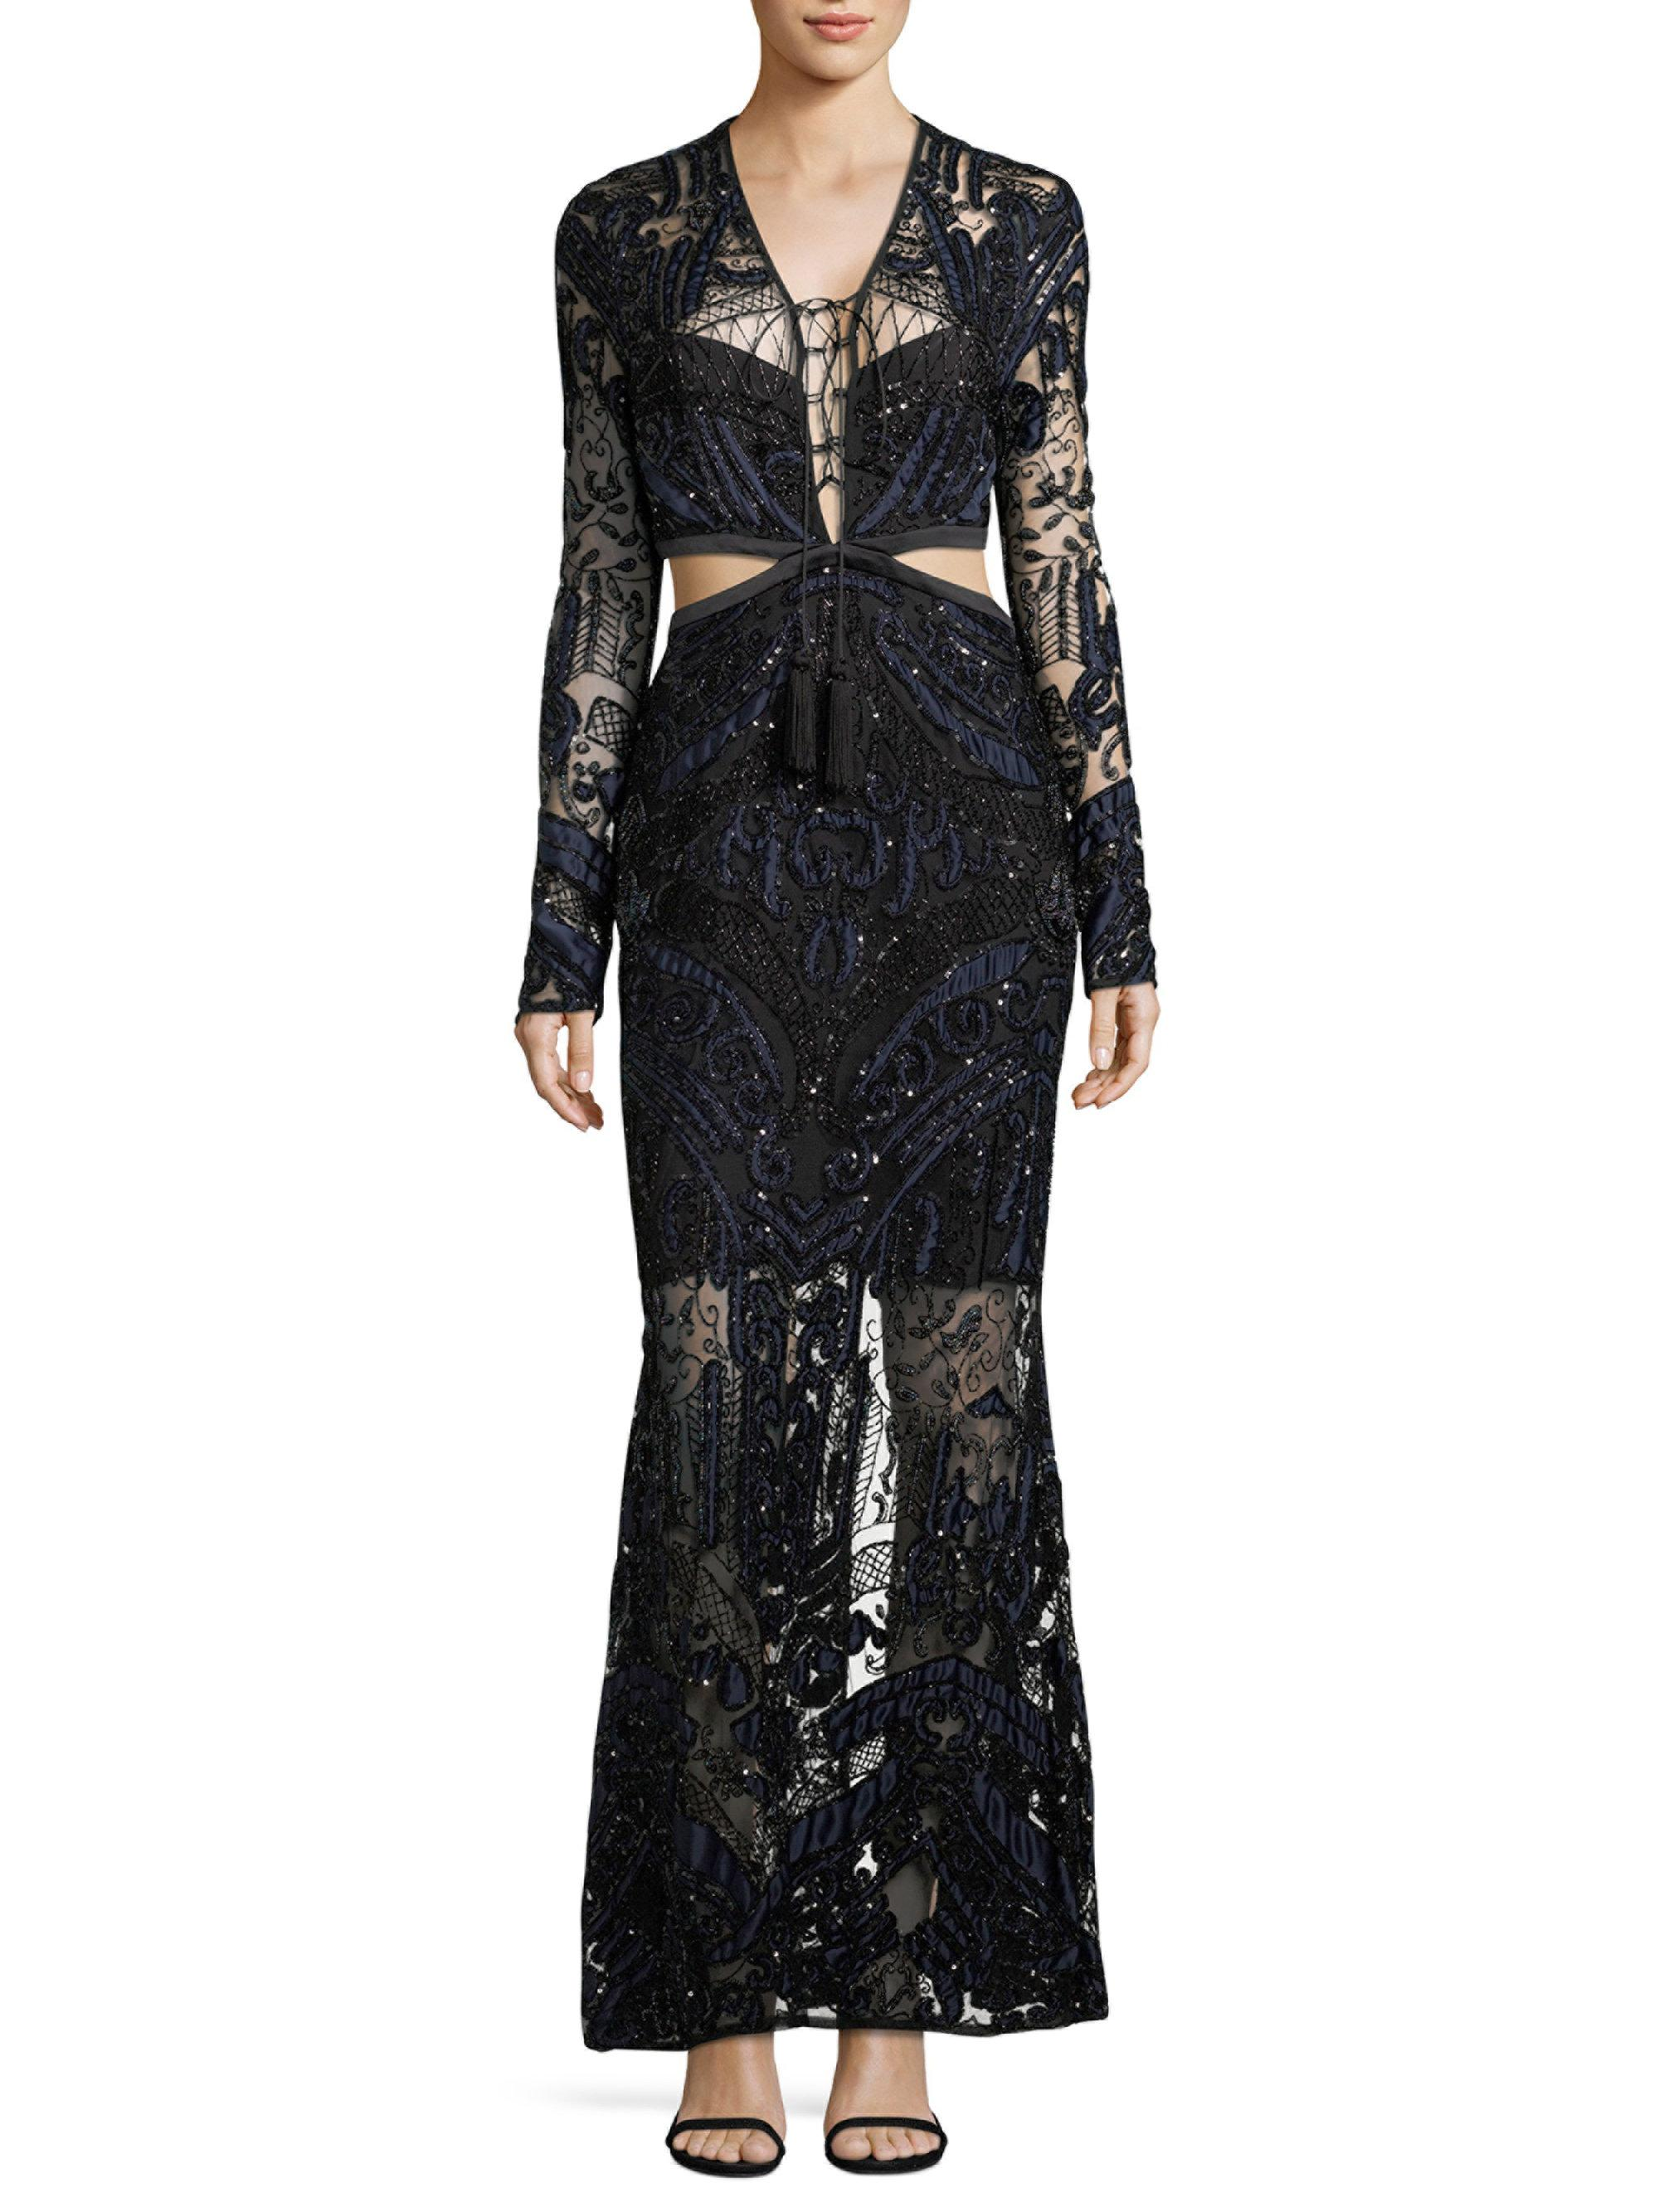 Lyst - Thurley Embellished Valentine Gown in Black